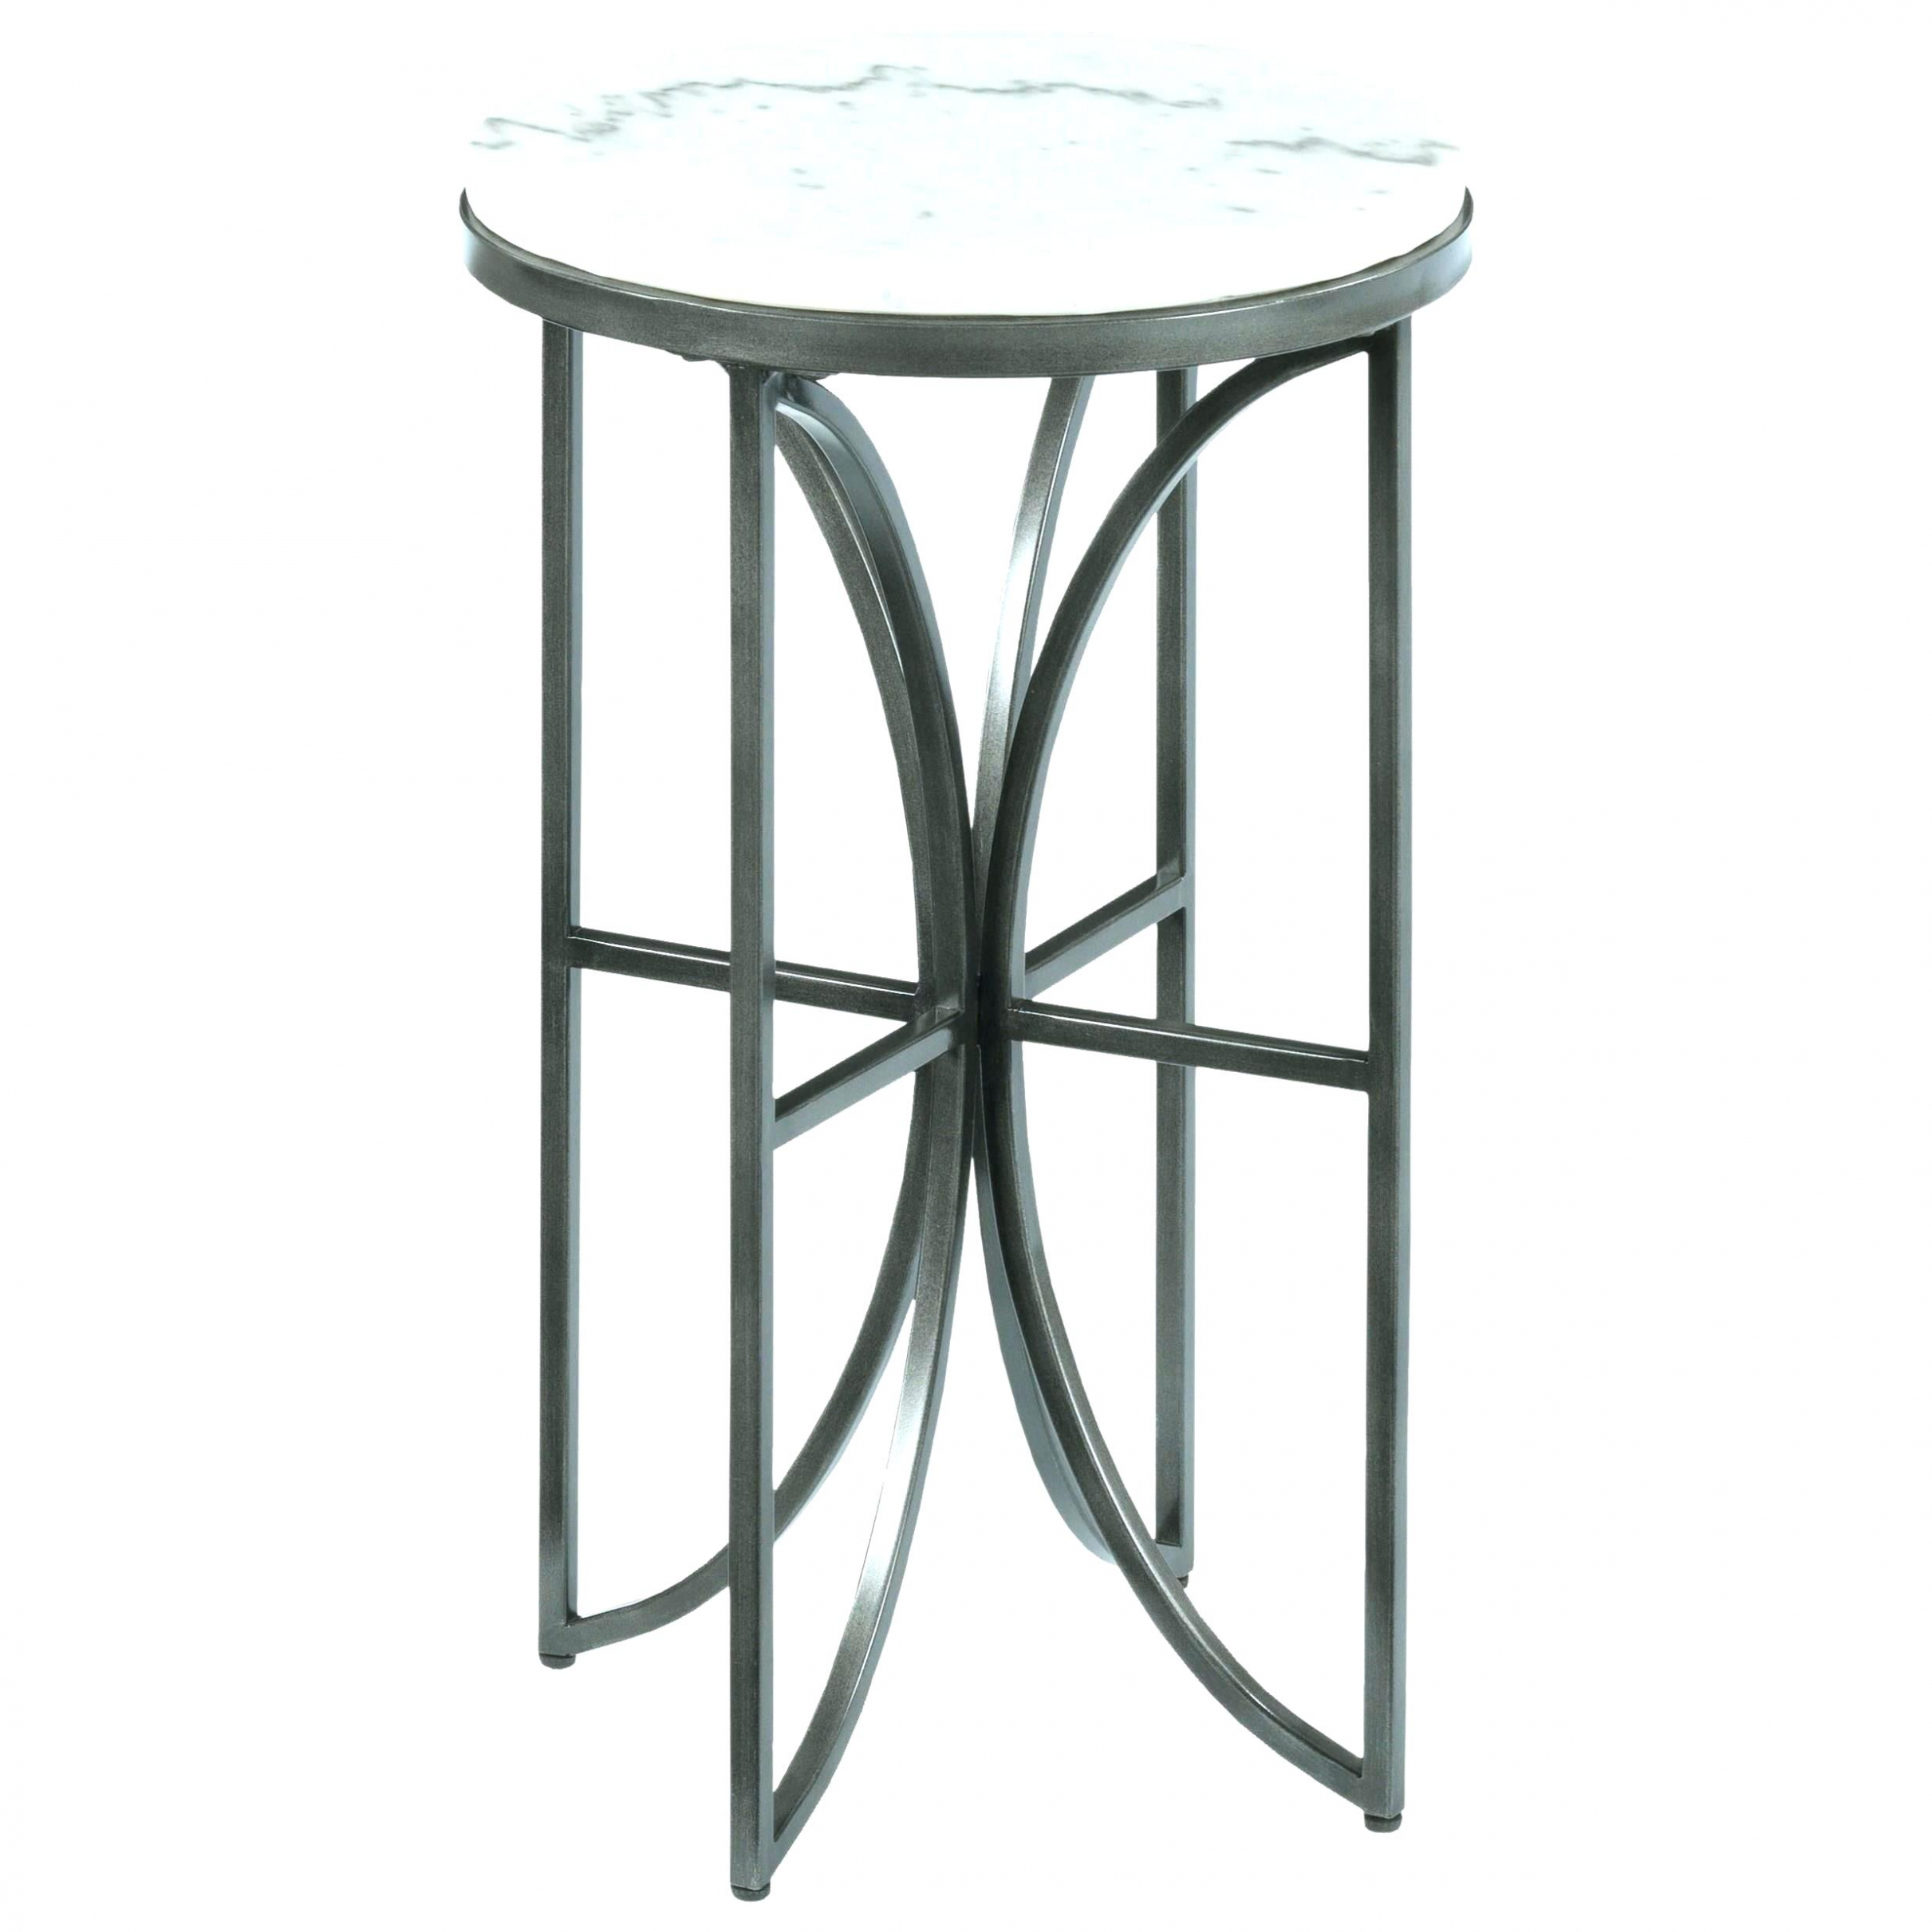 patio table garden stool white outdoor side black folding tables furniture clearance steelcase lounge seating indoor gardening accent full size target for umbrella marble wood